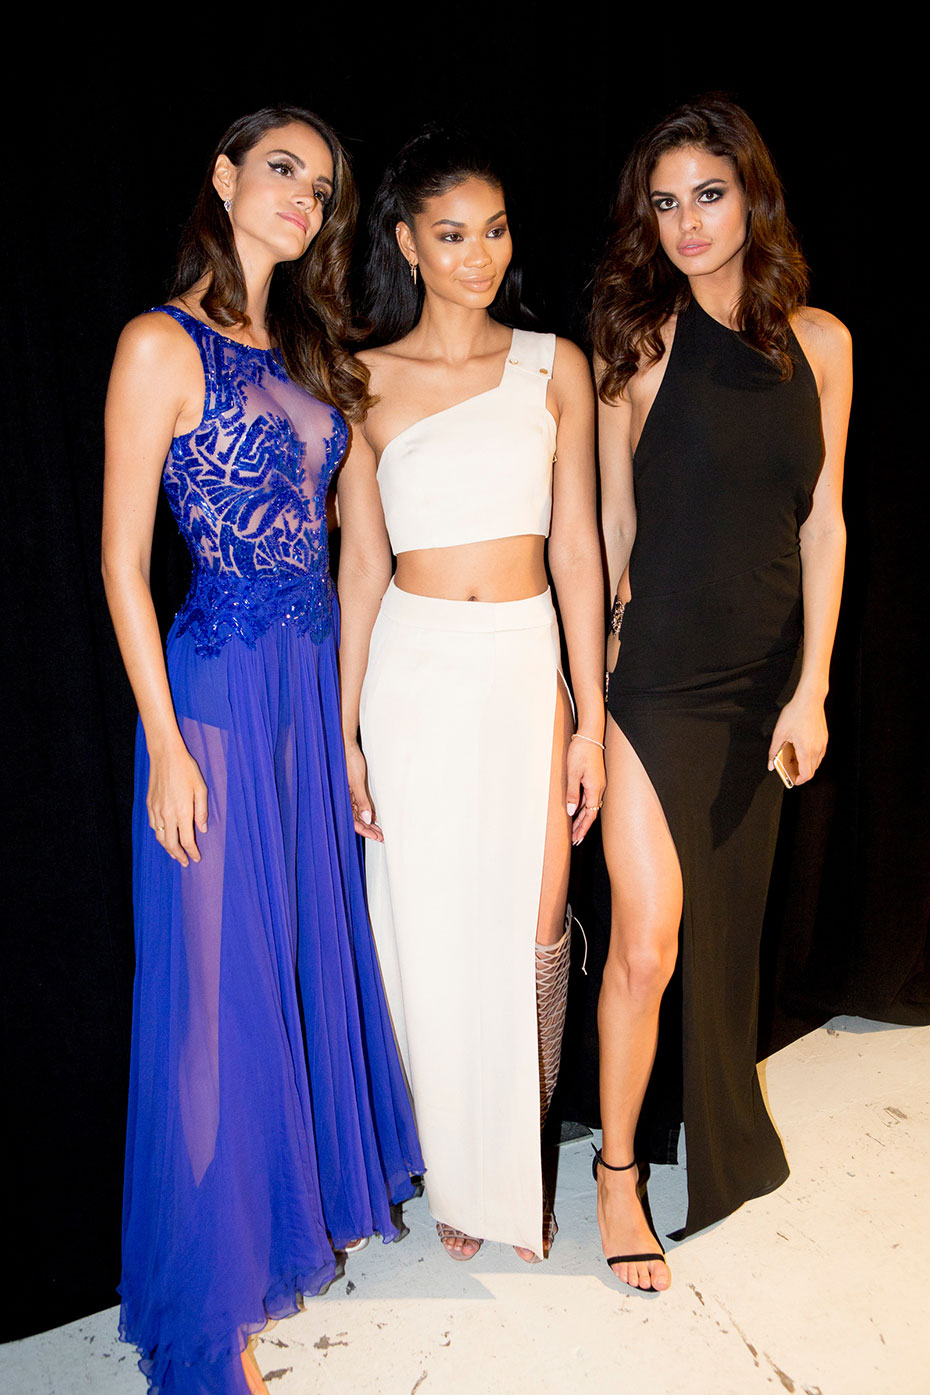 Sofia Resing, Chanel Iman and Bo :: Photo by Taylor Ballantyne